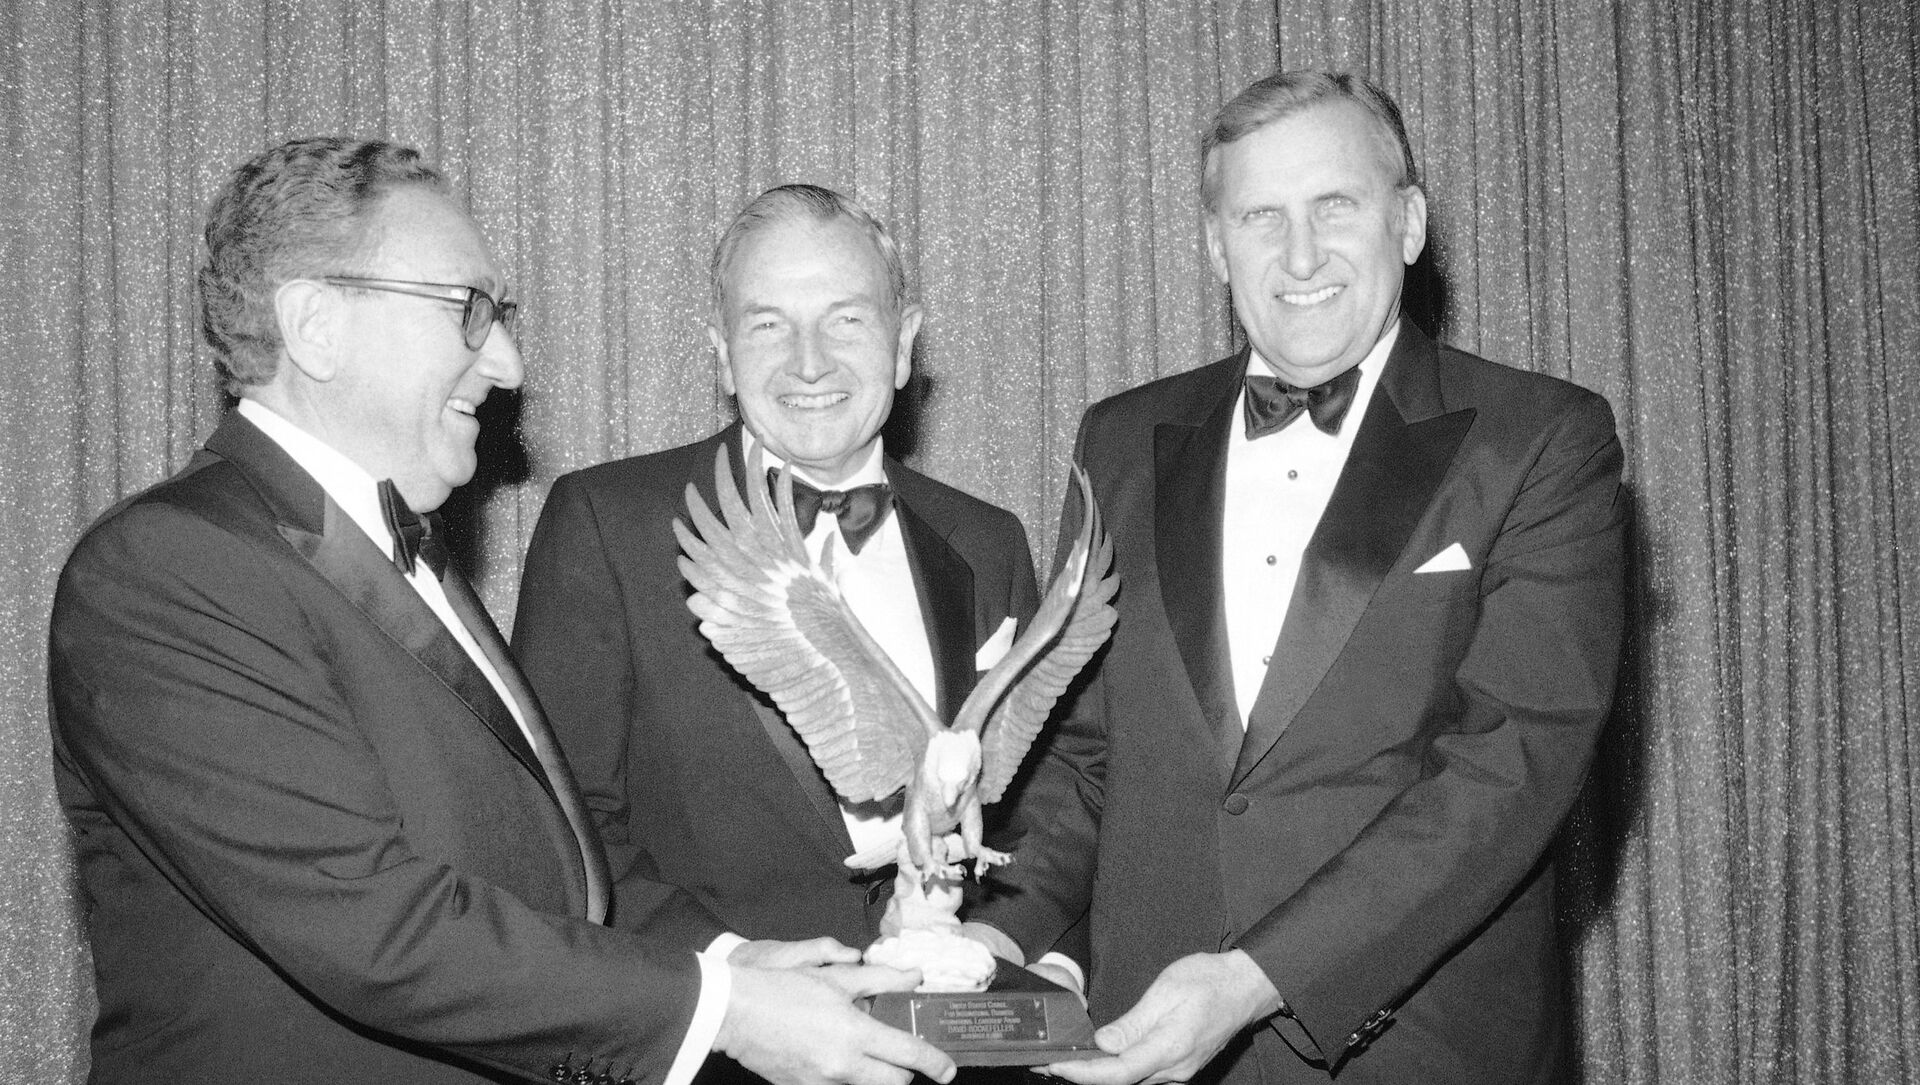 David Rockefeller, center, chairman of the Chase Manhattan's Bank's International Advisory Committee and the banks former chairman of the board and chief executive officer, receives the 1983 International Leadership Award from the U.S. Council for International Business, presented by Dr. Henry A. Kissinger, former Secretary of State, left, and Ralph A. Pfeiffer, Jr., U.S. Council Chairman, at New York's Pierre Hotel on Thursday, Dec. 9, 1983. The award recognizes outstanding contributions to world trade and investment. - Sputnik Mundo, 1920, 05.04.2017